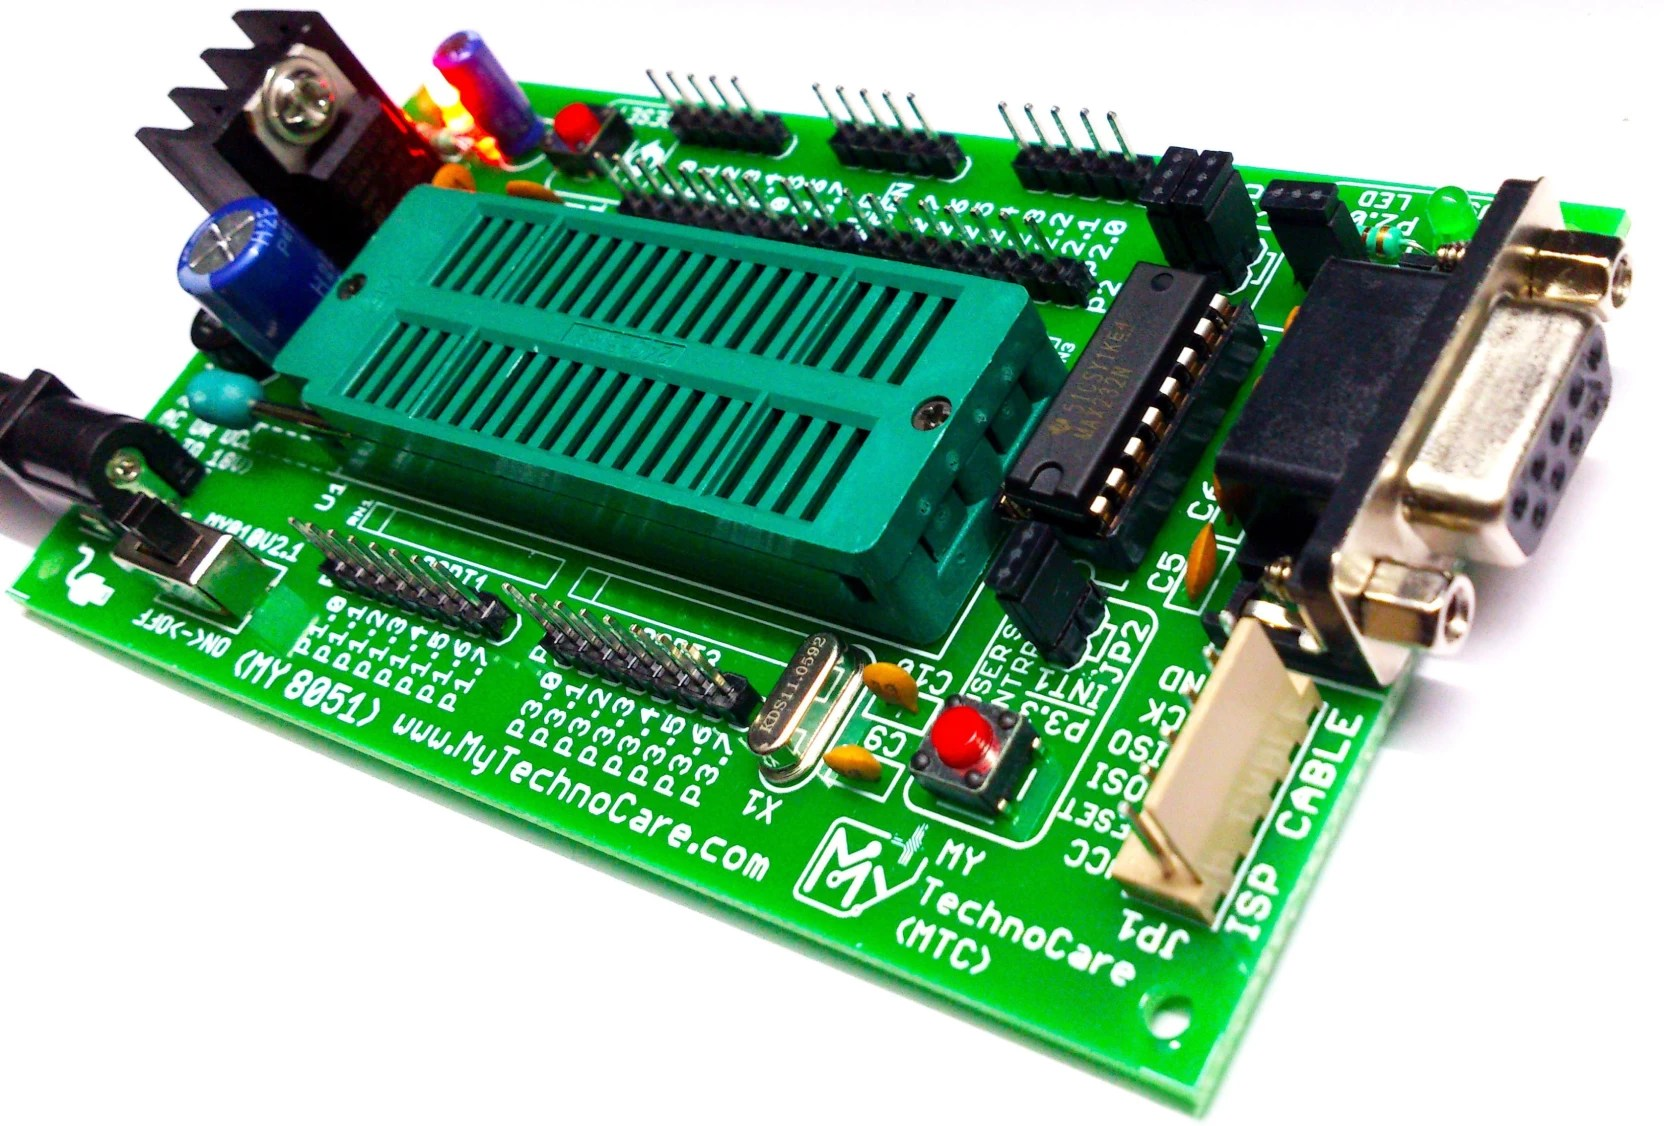 hight resolution of my technocare atmel 8051 development board zif socket max232 without at89s52 microcontroller ic support 89s51 xx 89cxx p89v51rd2 architecture 40 pin chip